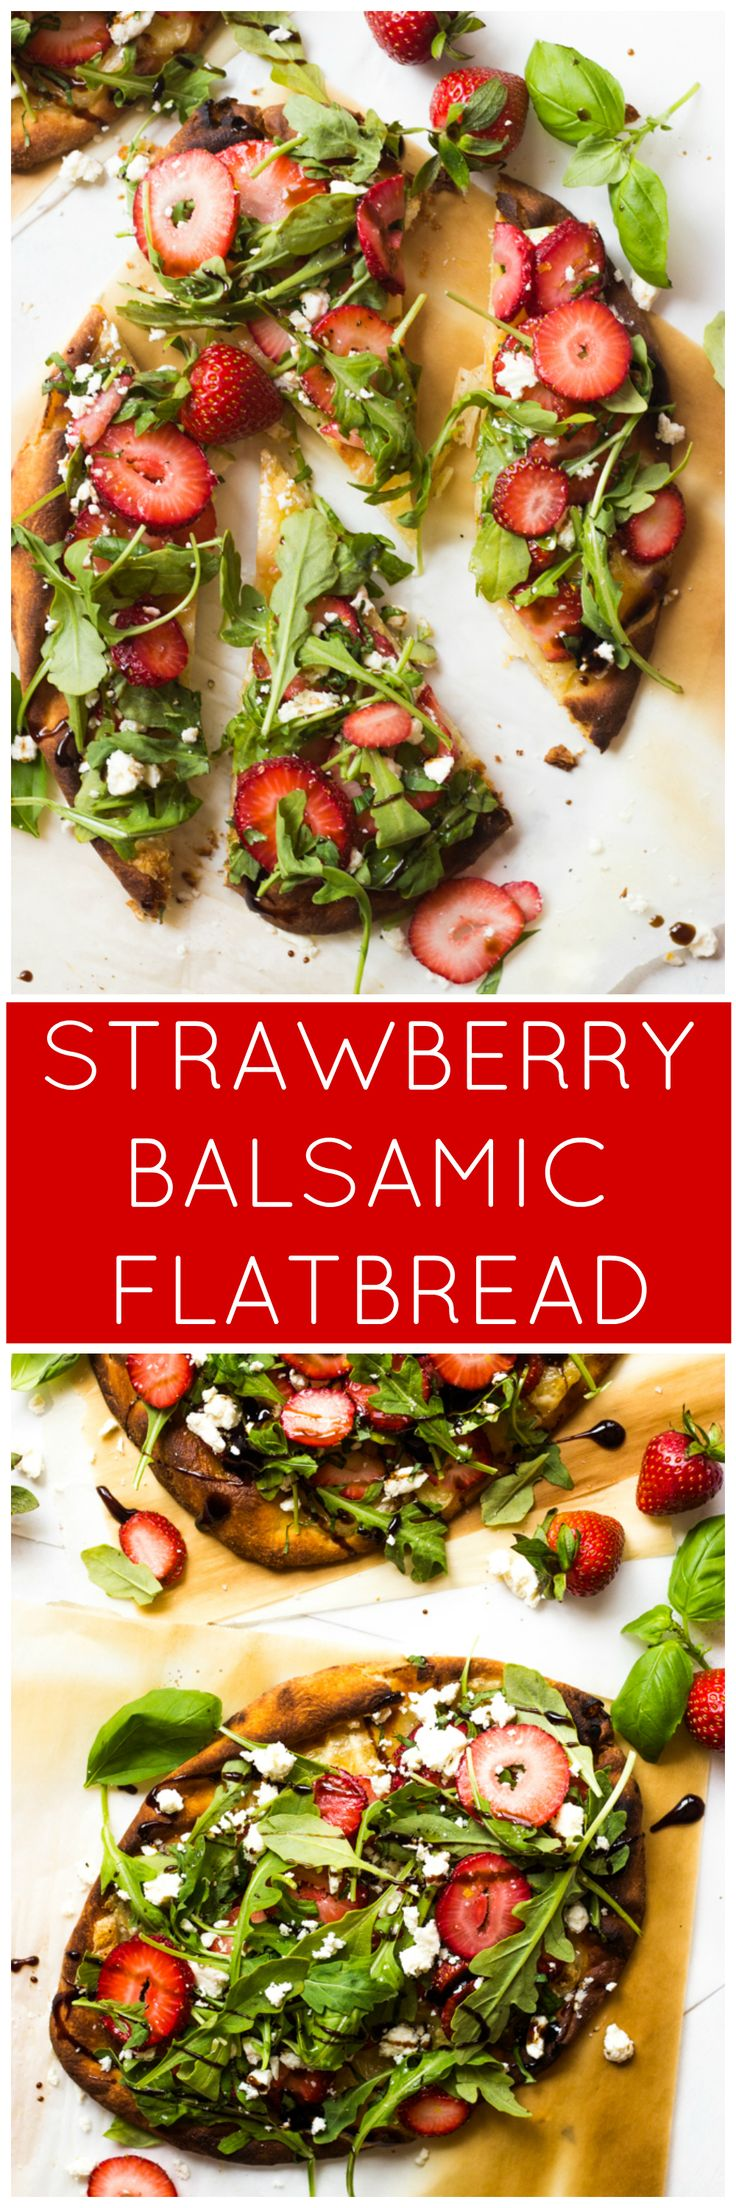 25+ best ideas about Strawberry balsamic on Pinterest ...